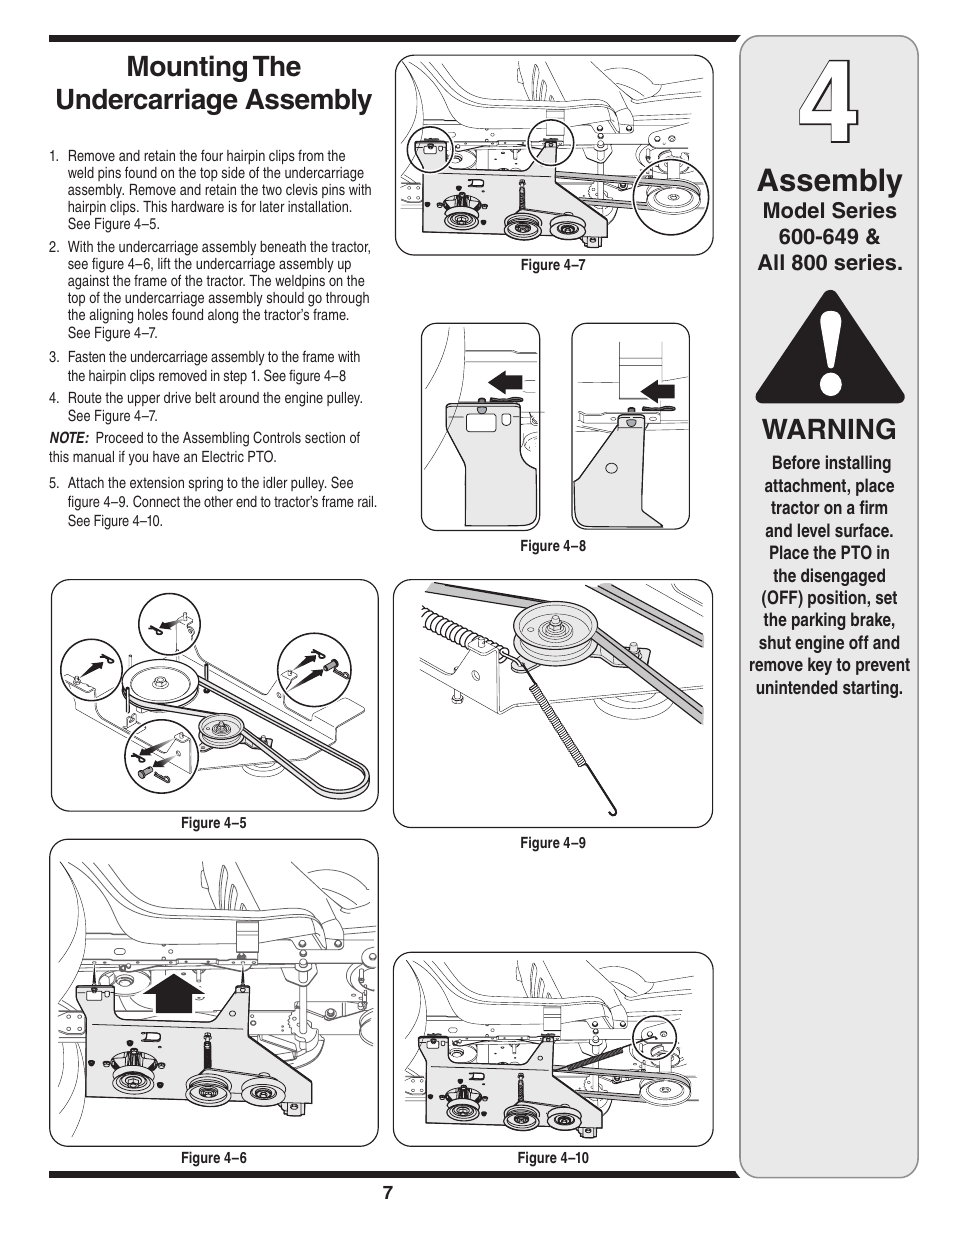 hight resolution of  array assembly warning mounting the undercarriage assembly mtd 190 032 rh manualsdir com